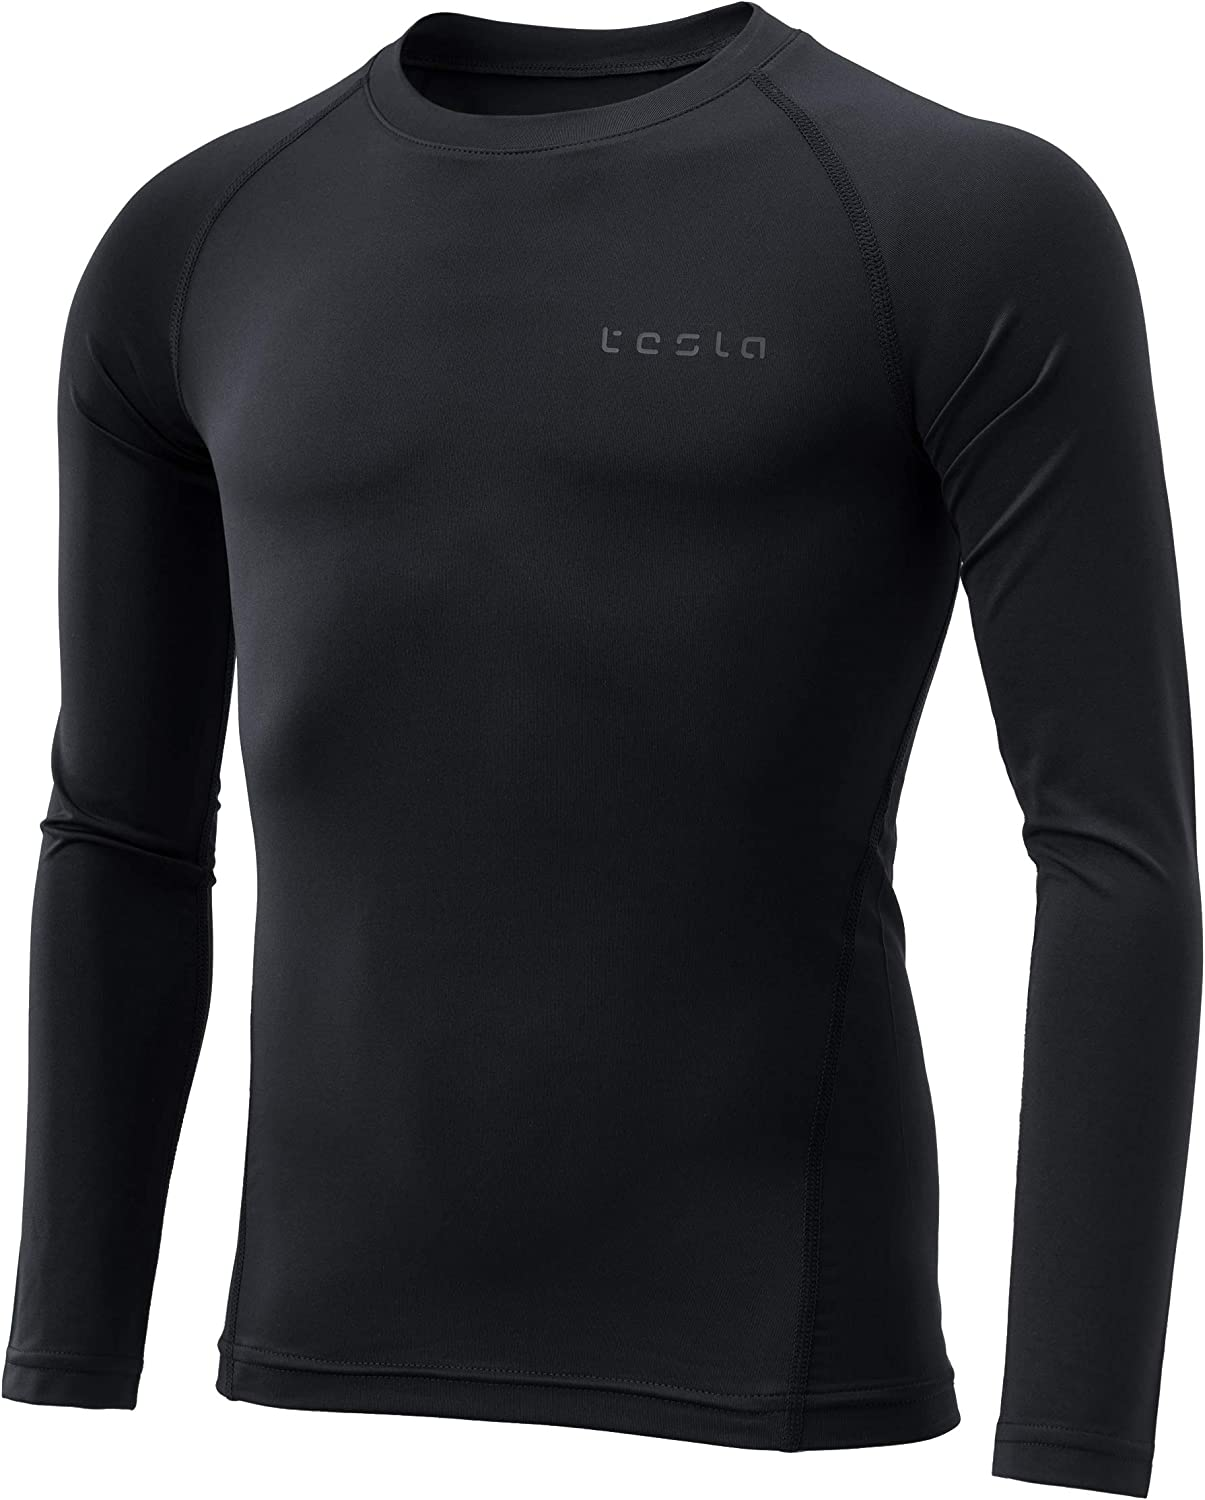 TSLA Boy's Cool Dry Long Sleeve Compression Shirts, Athletic Workout Shirt, Sports Base Layer T-Shirt: Clothing